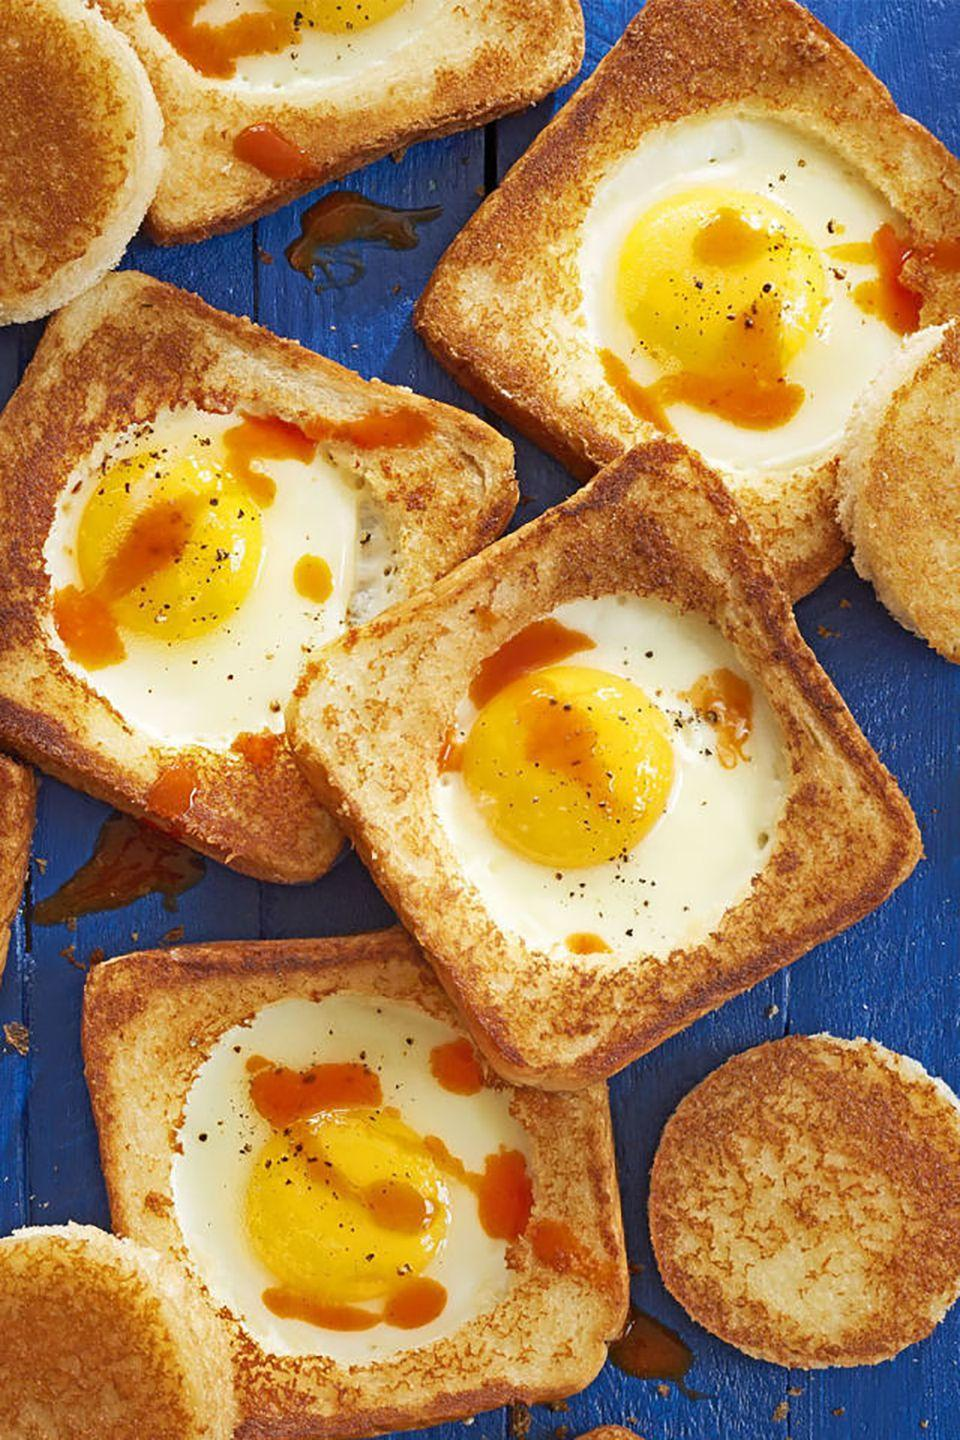 "Upgrade his toast by cooking it on the stove with the classic egg-in-a-hole method, then add some Parmesan cheese and hot sauce for an added kick. <a href=""https://www.countryliving.com/food-drinks/recipes/a41630/parmesan-egg-in-hole-recipe/"" rel=""nofollow noopener"" target=""_blank"" data-ylk=""slk:Get the recipe."" class=""link rapid-noclick-resp""><strong>Get the recipe.</strong></a> <a href=""https://www.amazon.com/CybrTrayd-RM-1728-Biscuit-Cutter-Metallic/dp/B005G87J7I?tag=syn-yahoo-20&ascsubtag=%5Bartid%7C10050.g.4356%5Bsrc%7Cyahoo-us"" class=""link rapid-noclick-resp"" rel=""nofollow noopener"" target=""_blank"" data-ylk=""slk:SHOP BISCUIT CUTTERS"">SHOP BISCUIT CUTTERS</a>"